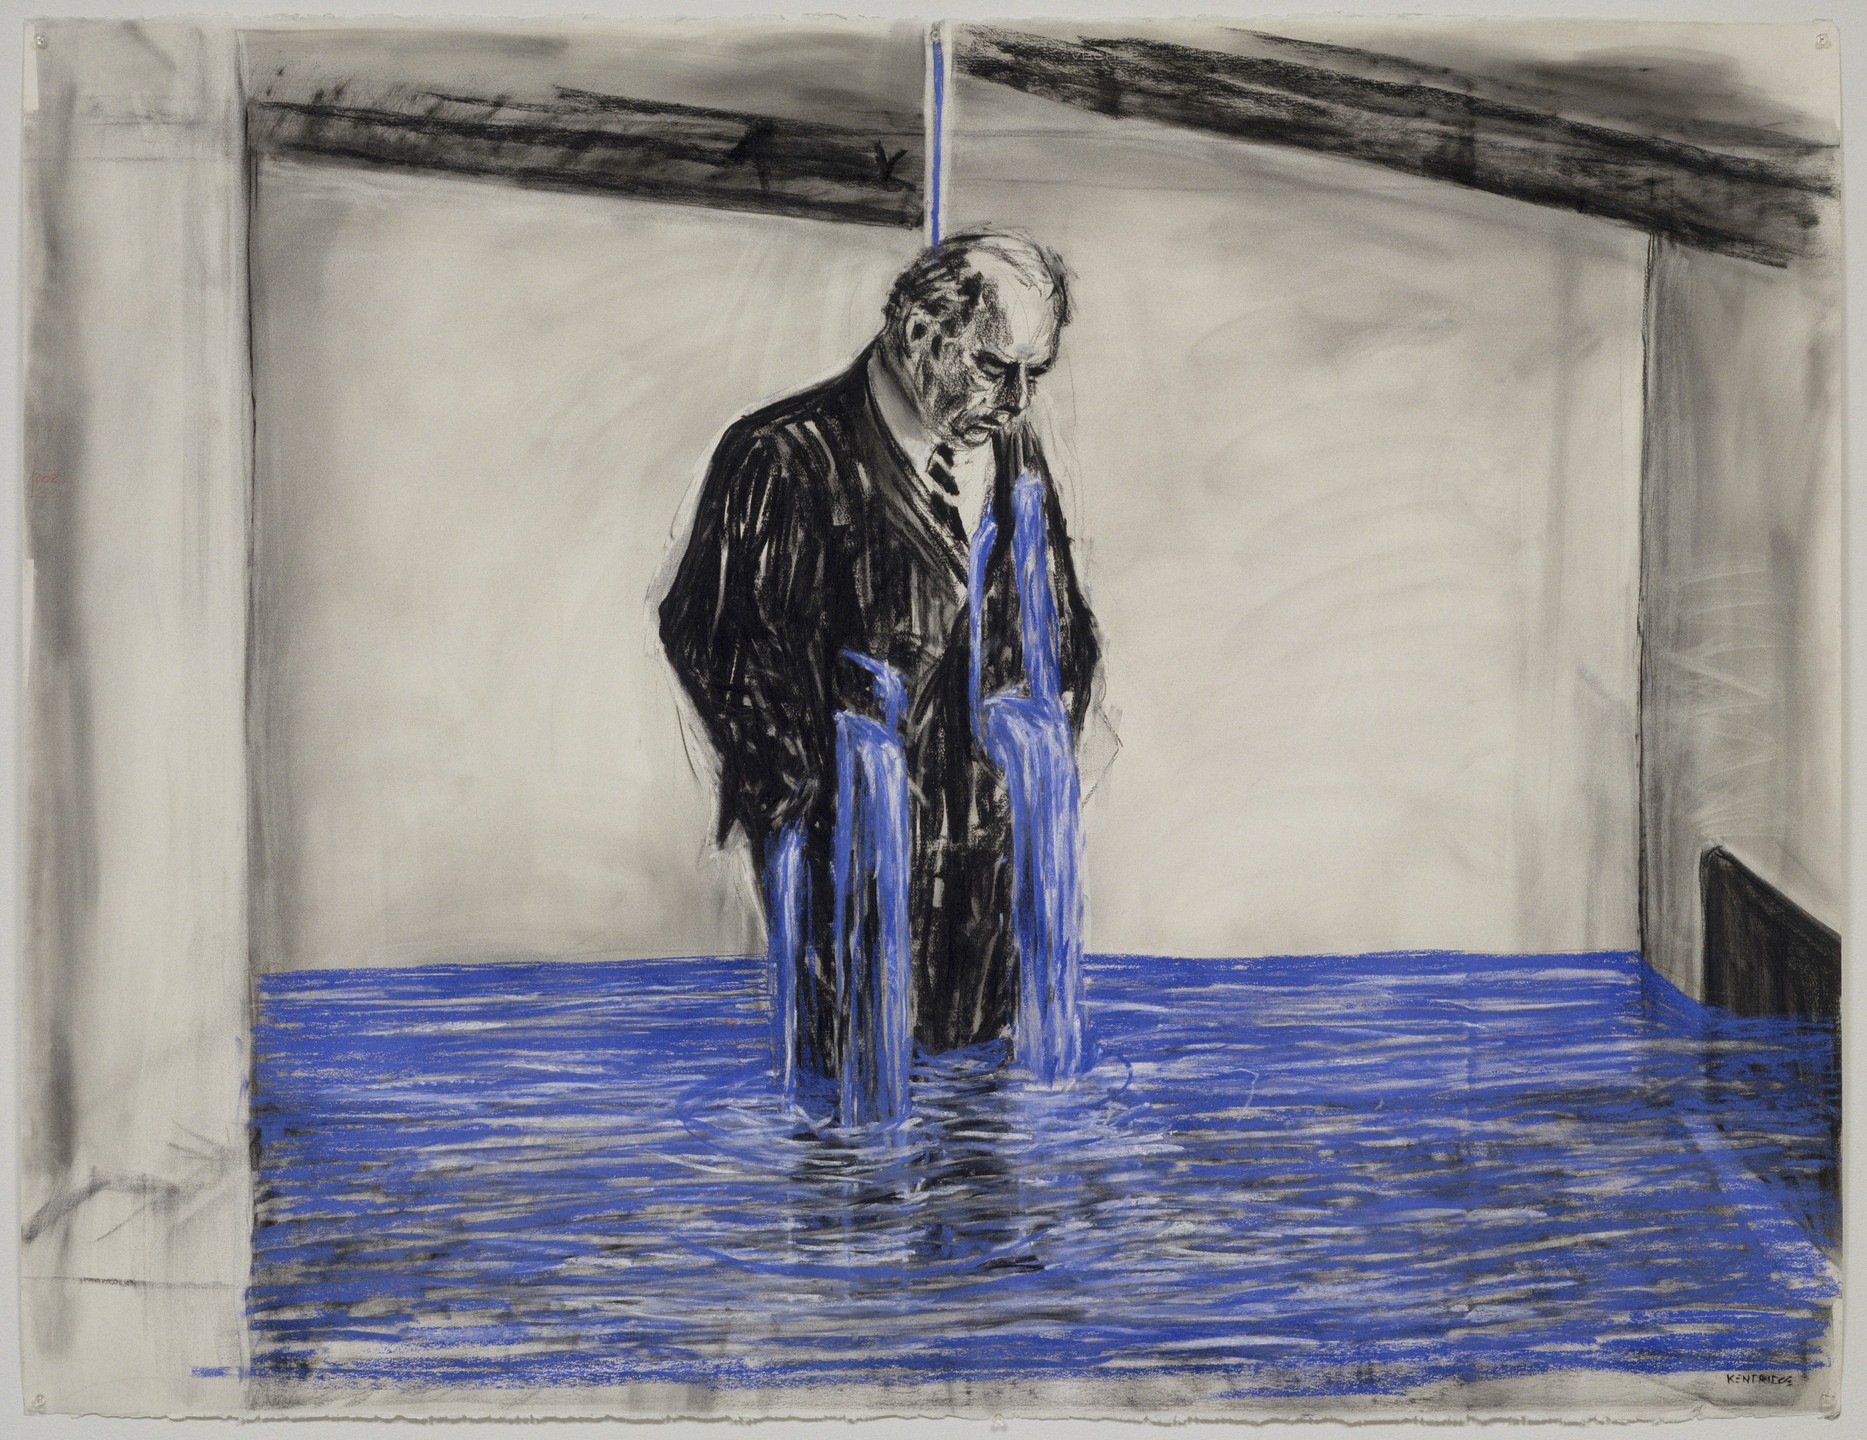 William Kentridge. Drawing from Stereoscope. (1998-99)